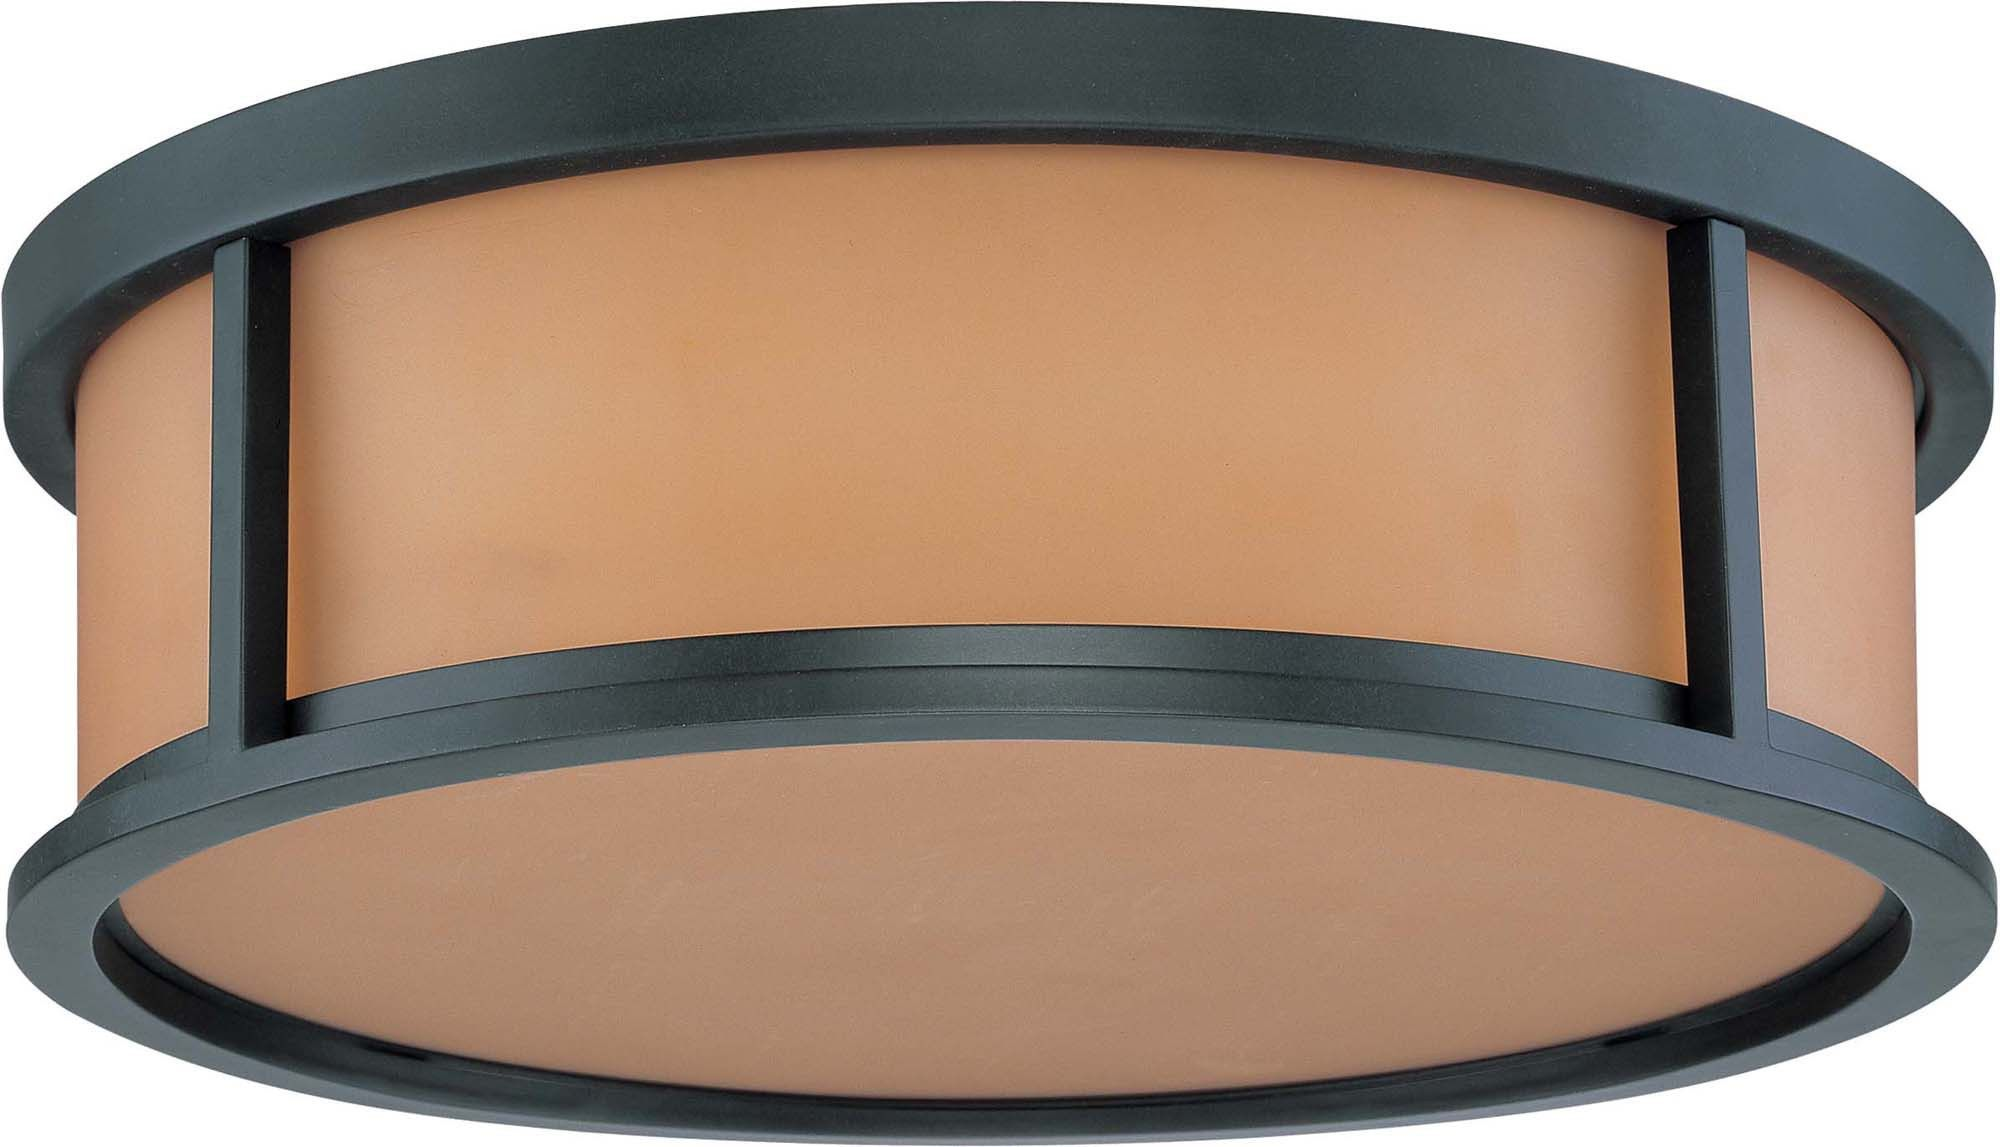 Nuvo Odeon ES - 3 Light 15 inch Flush Dome w/ Parchment Glass - (2) 13w GU24 Lamps Included